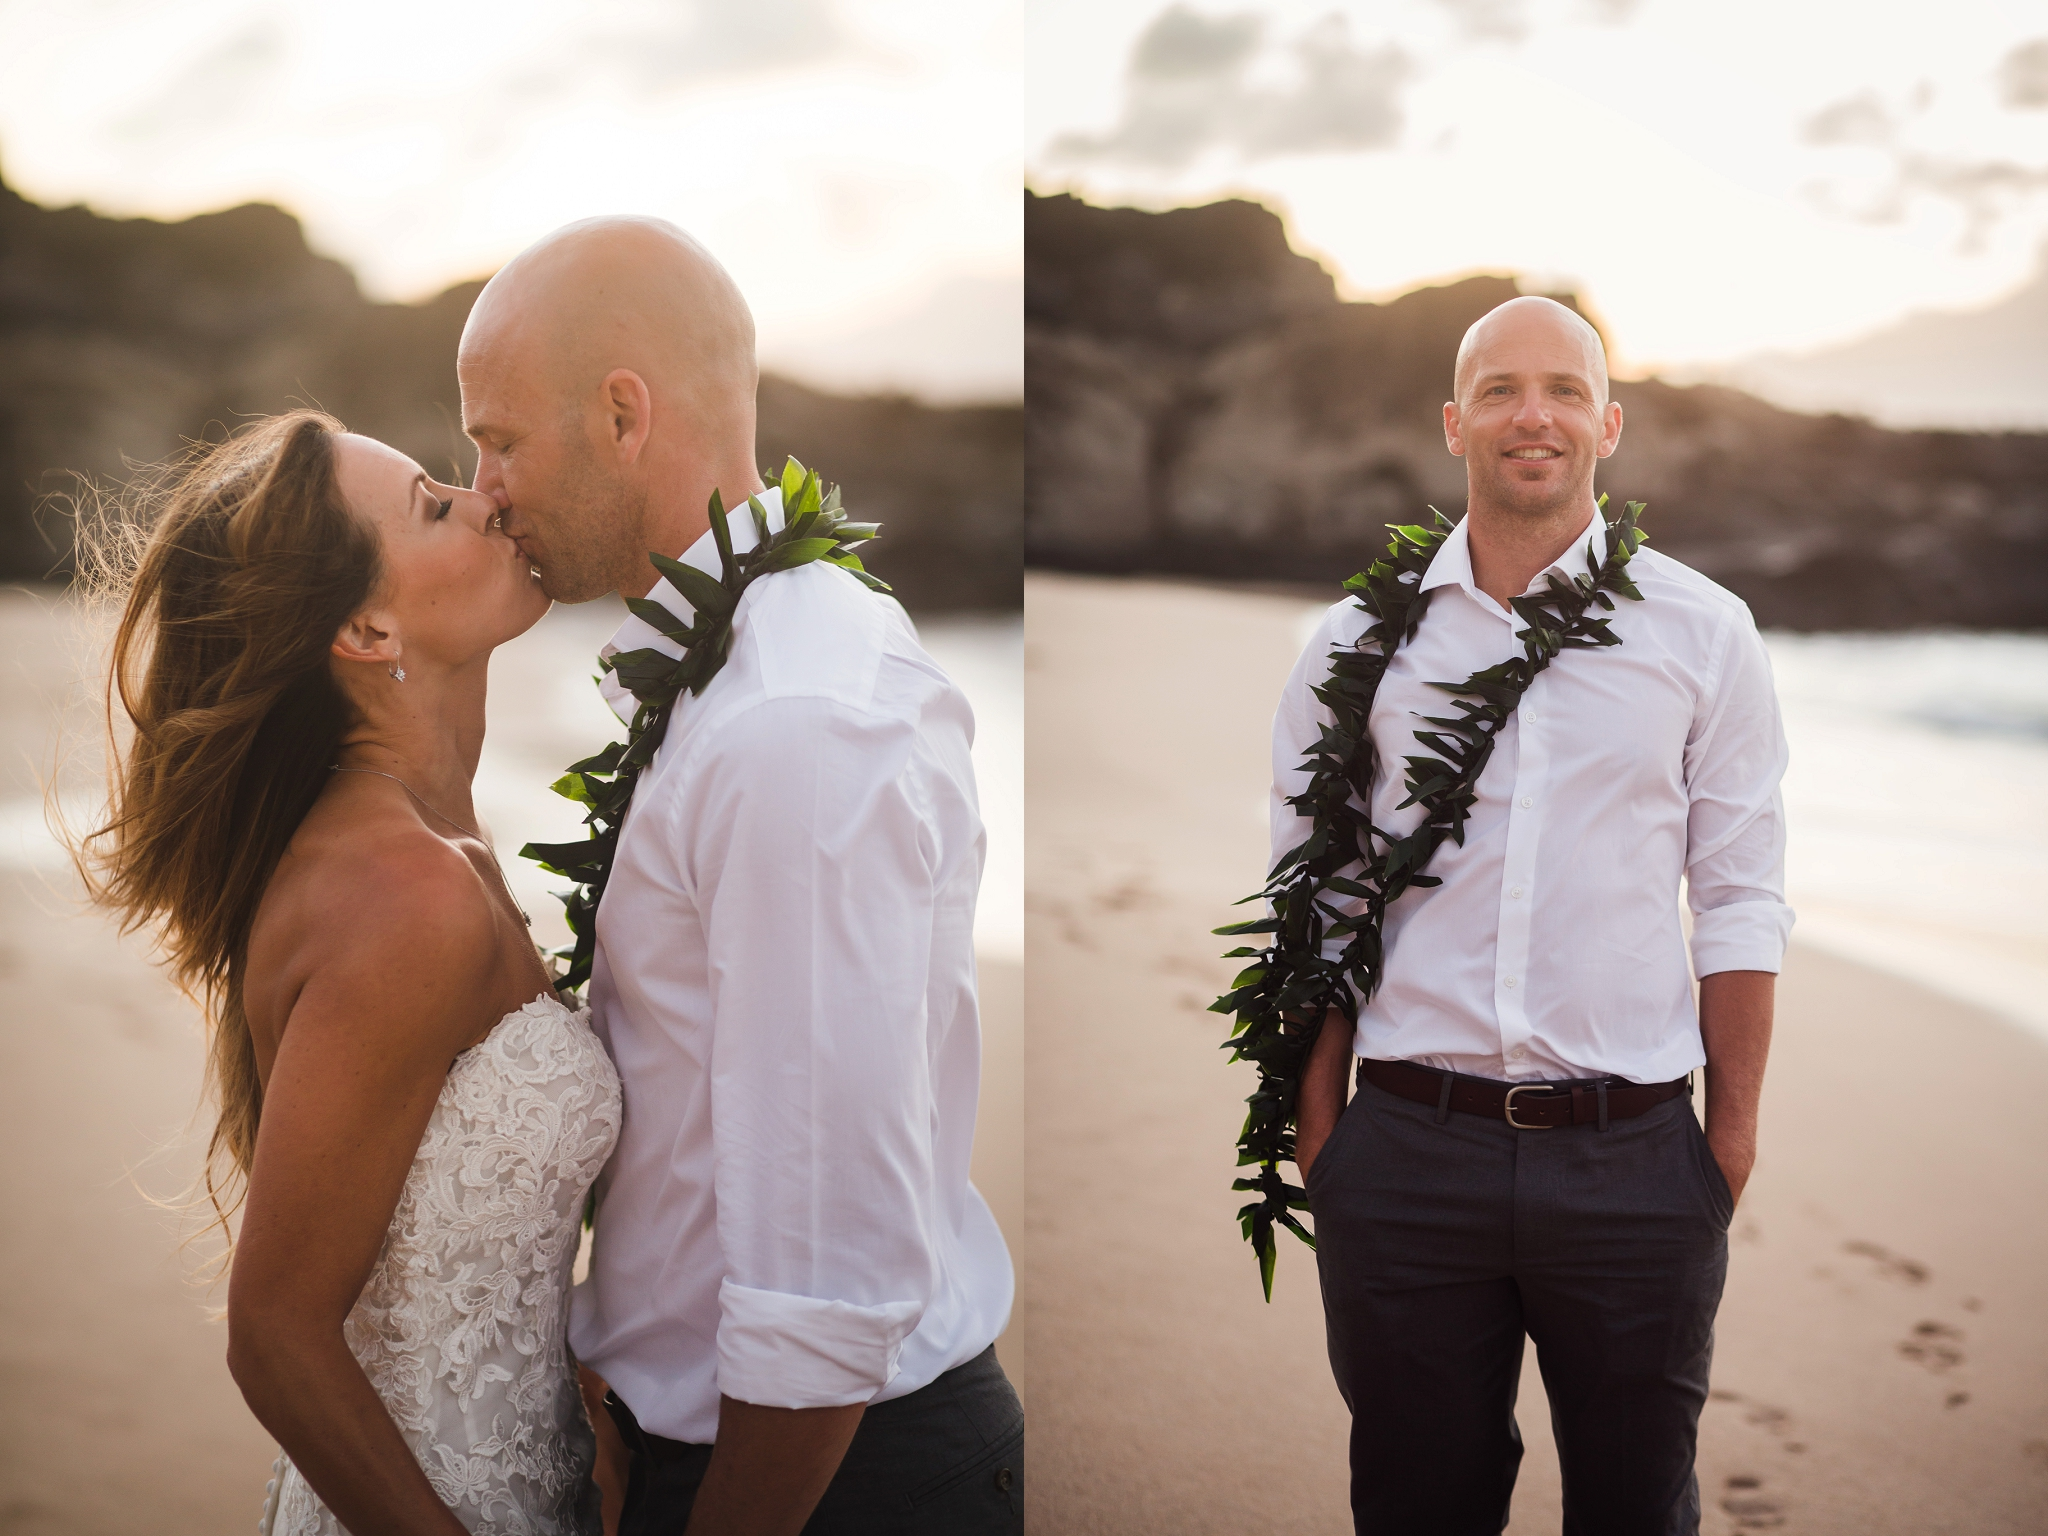 Maui_wedding_photographer_hawaii_destination_vannessa_kralovic (6).jpg